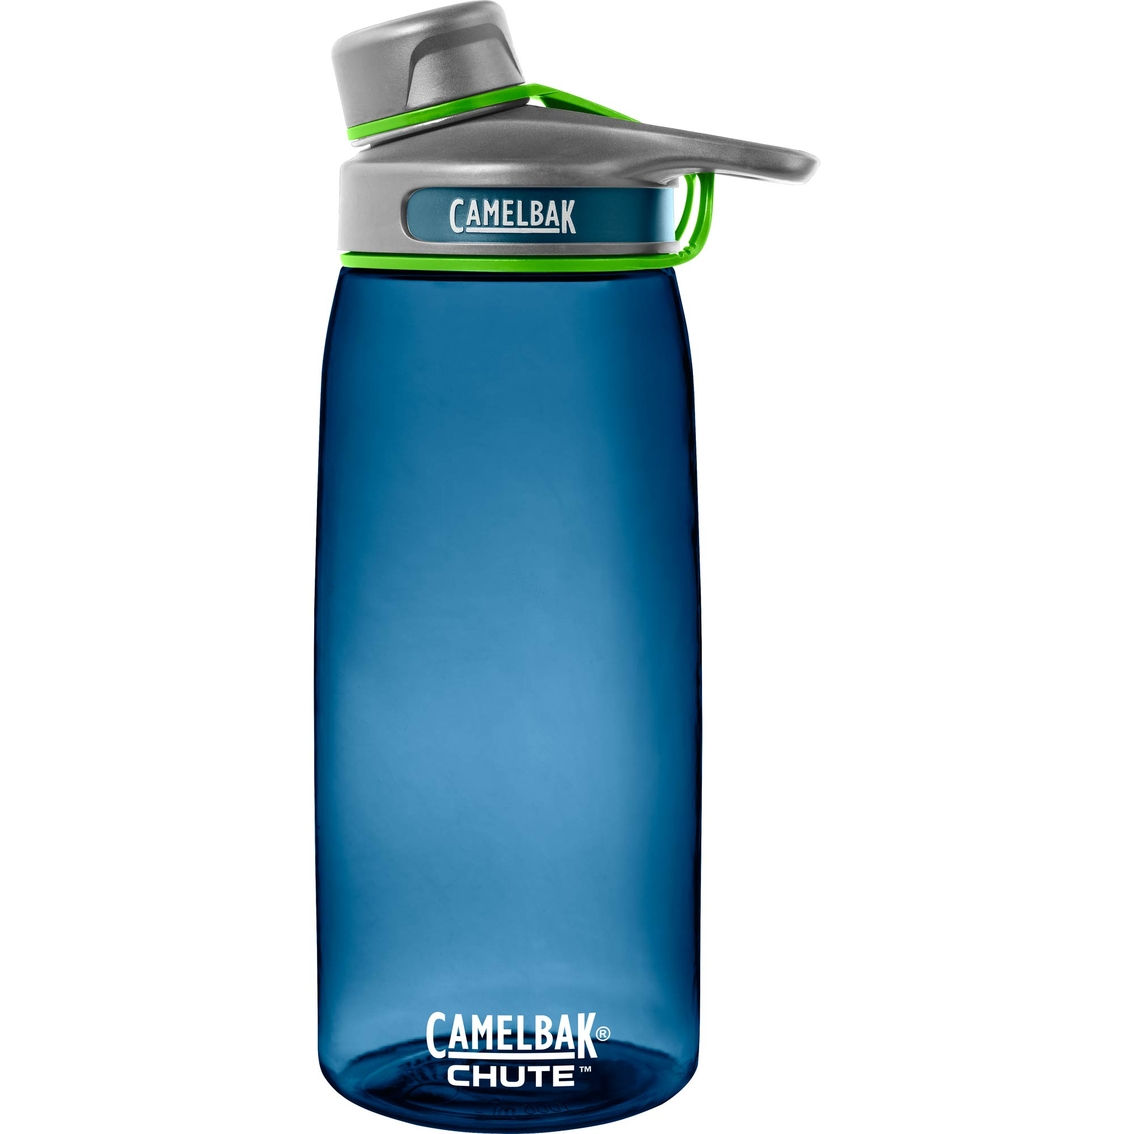 camelbak chute 1 liter water bottle blue hydration sports outdoors shop the exchange. Black Bedroom Furniture Sets. Home Design Ideas